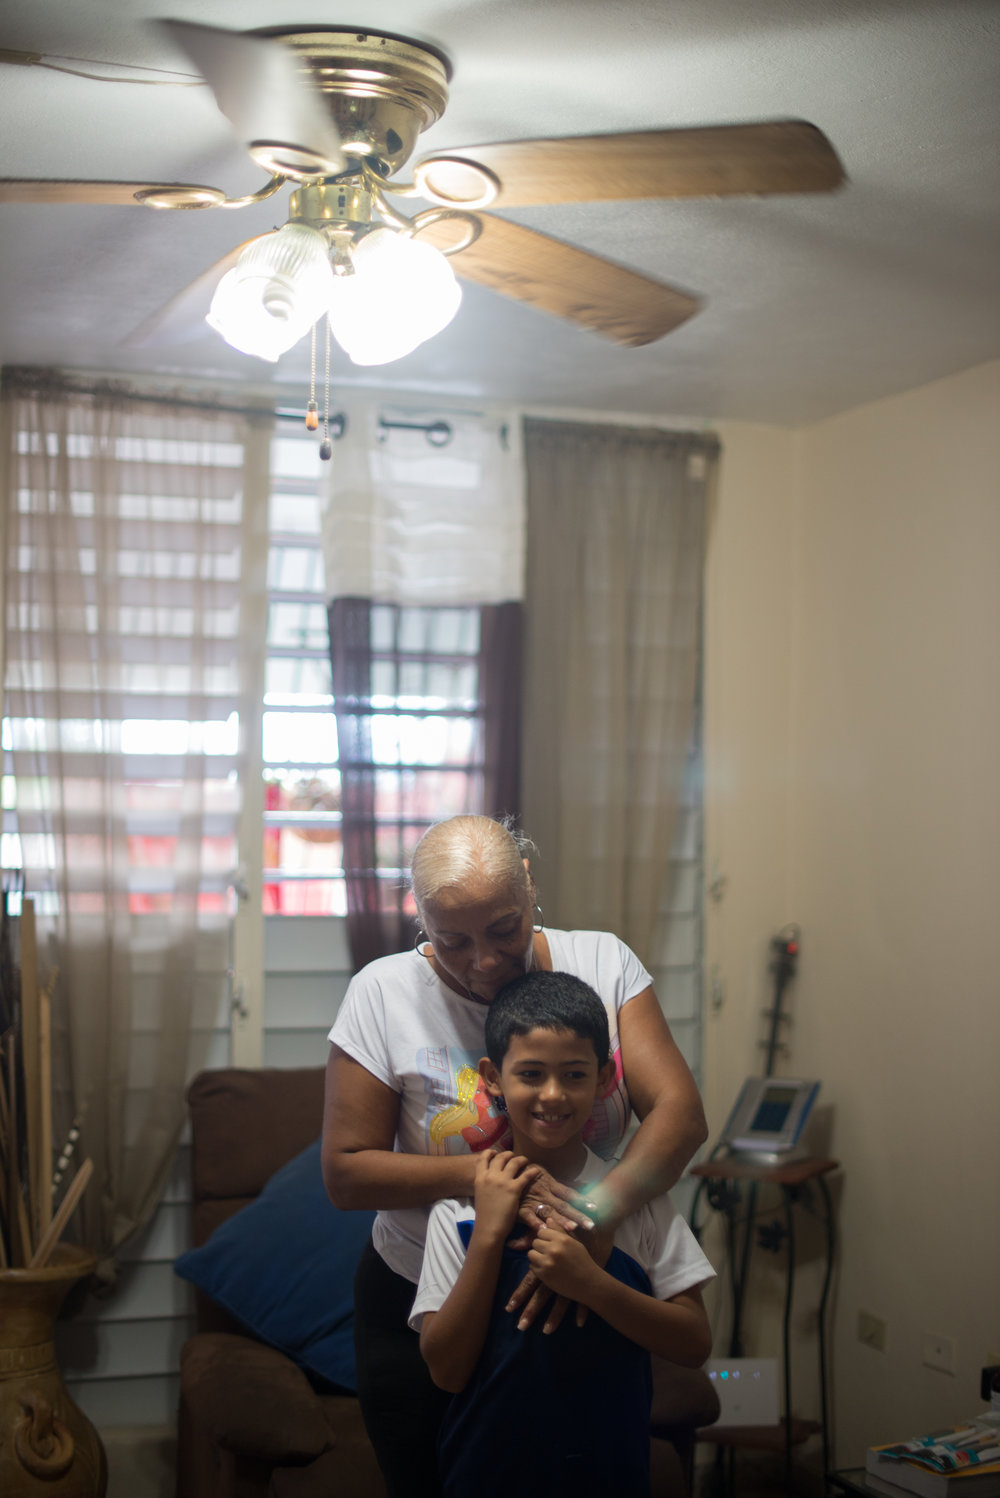 6/9/18 – Bayamón, Puerto Rico – Jayson Grau is a student in the second grade at Aurelio Perez Martinez, one of the schools set to close before the Fall. His grandmother Wanda takes the kids to school while their mother works, and lives at an apartment nearby to theirs so that she can help take care of the whole family. The Puerto Rican Department of Education is closing 283 schools, and moving multiple schools into the same building, citing the past year's drastic drop in enrollment as one of the primary reasons to lower the amount of schools, and instead increase the amount of students in each school. Students of special education schools are one of the groups to be most negatively affected by these closings, as the new schools may not offer the resources the students need and have access to at their current schools. (Sofie Hecht Photography)